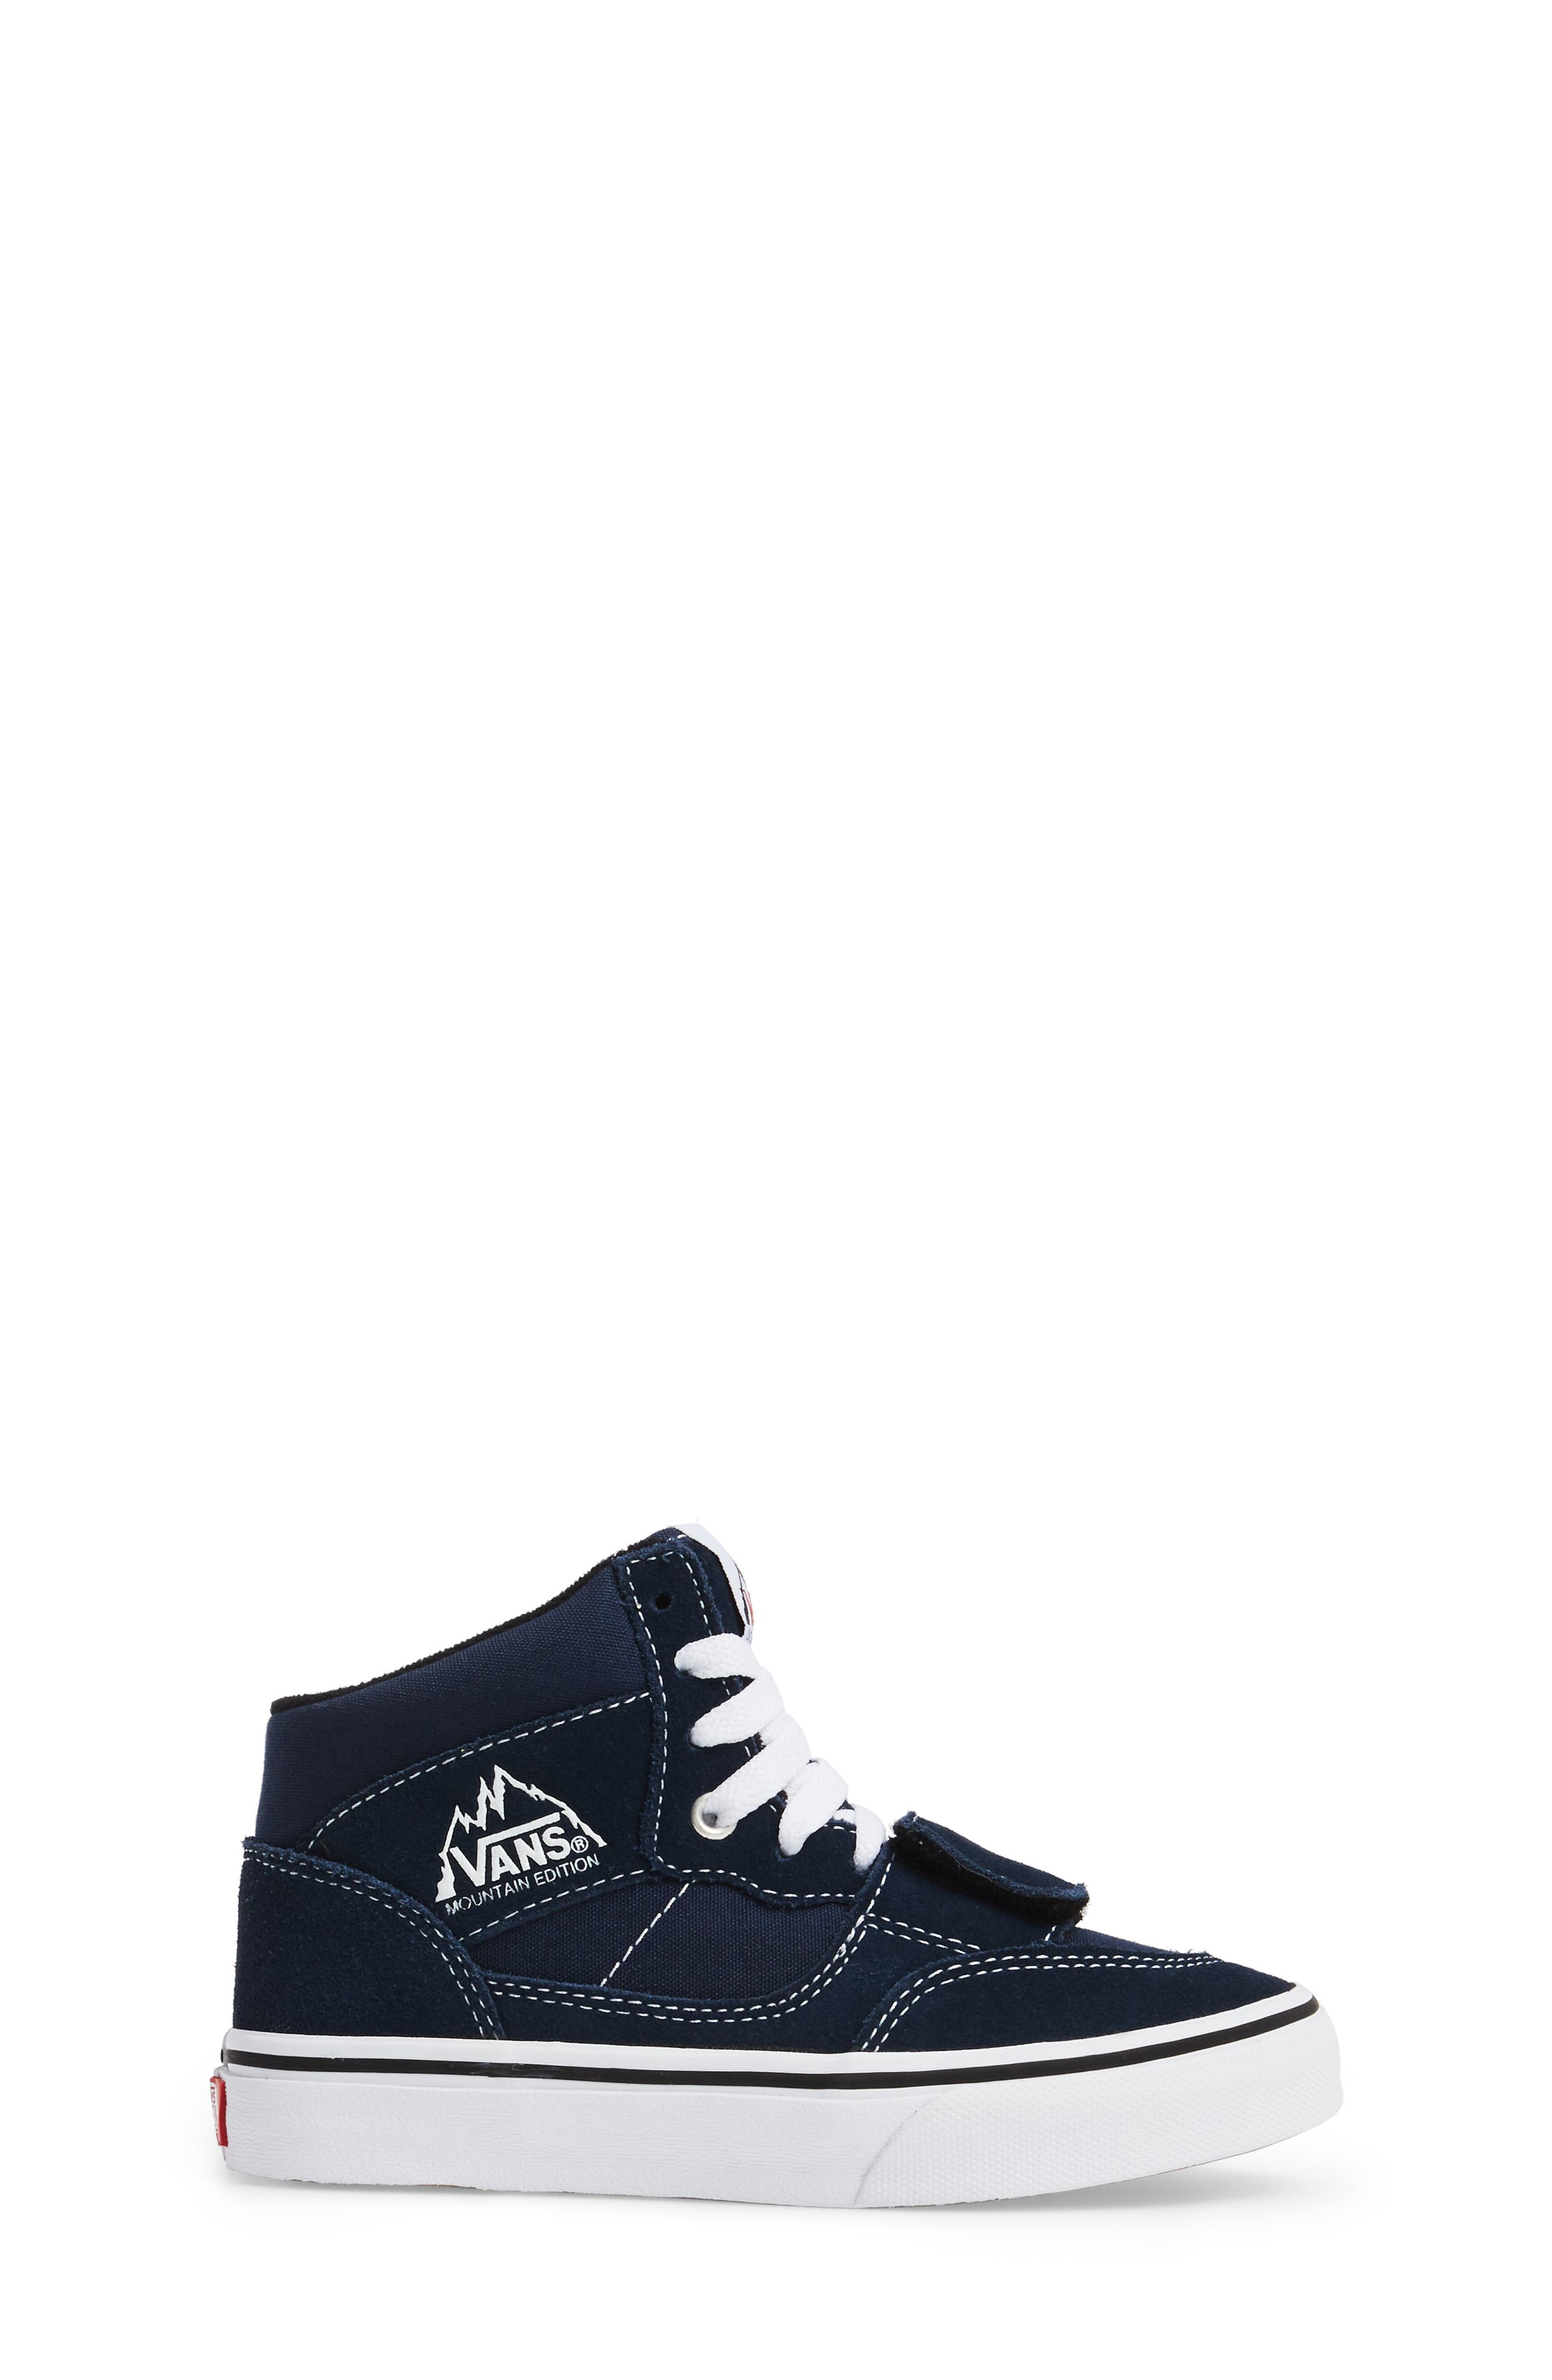 Mountain Edition Mid Top Sneaker,                             Alternate thumbnail 3, color,                             Dress Blue Canvas/ Suede